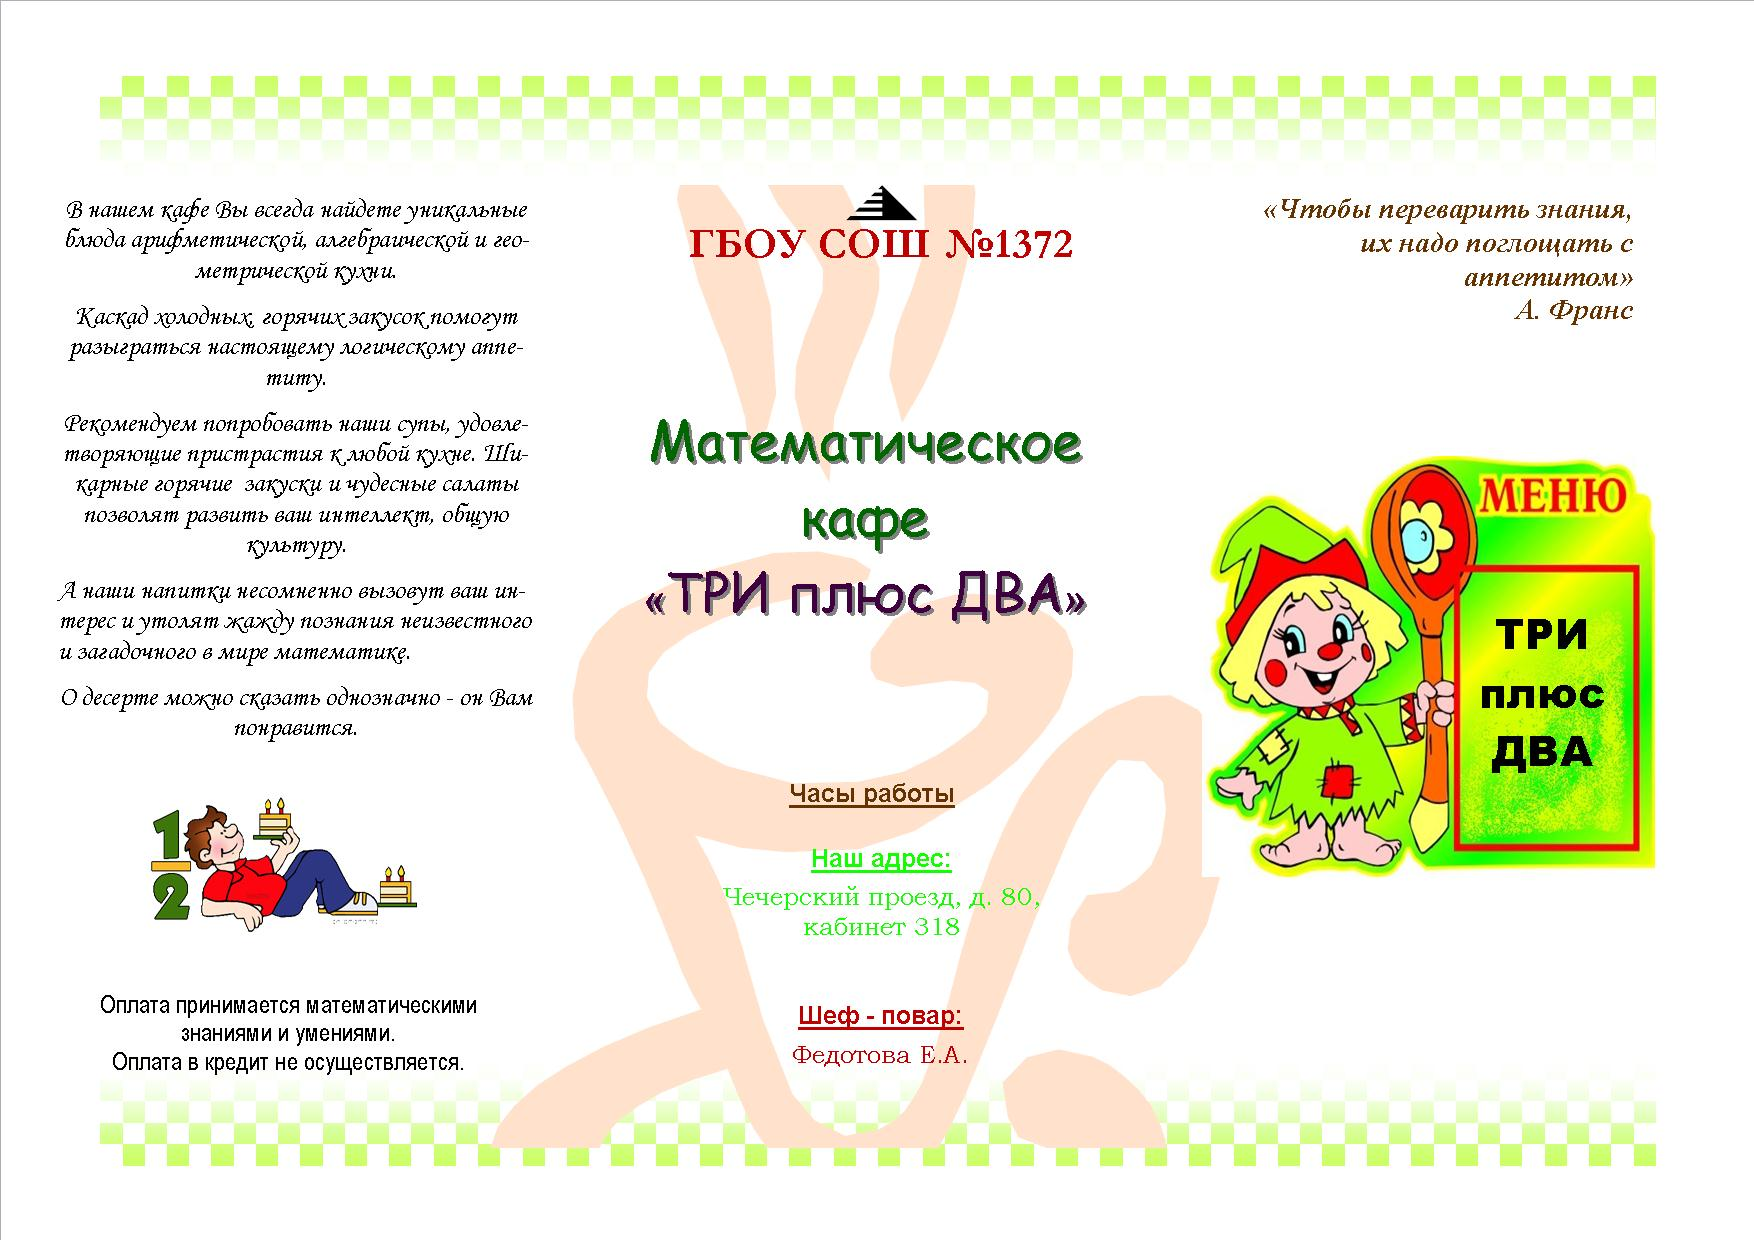 http://www.teacherjournal.ru/attachments/5123_%D0%BC%D0%B5%D0%BD%D1%8E%201.jpg